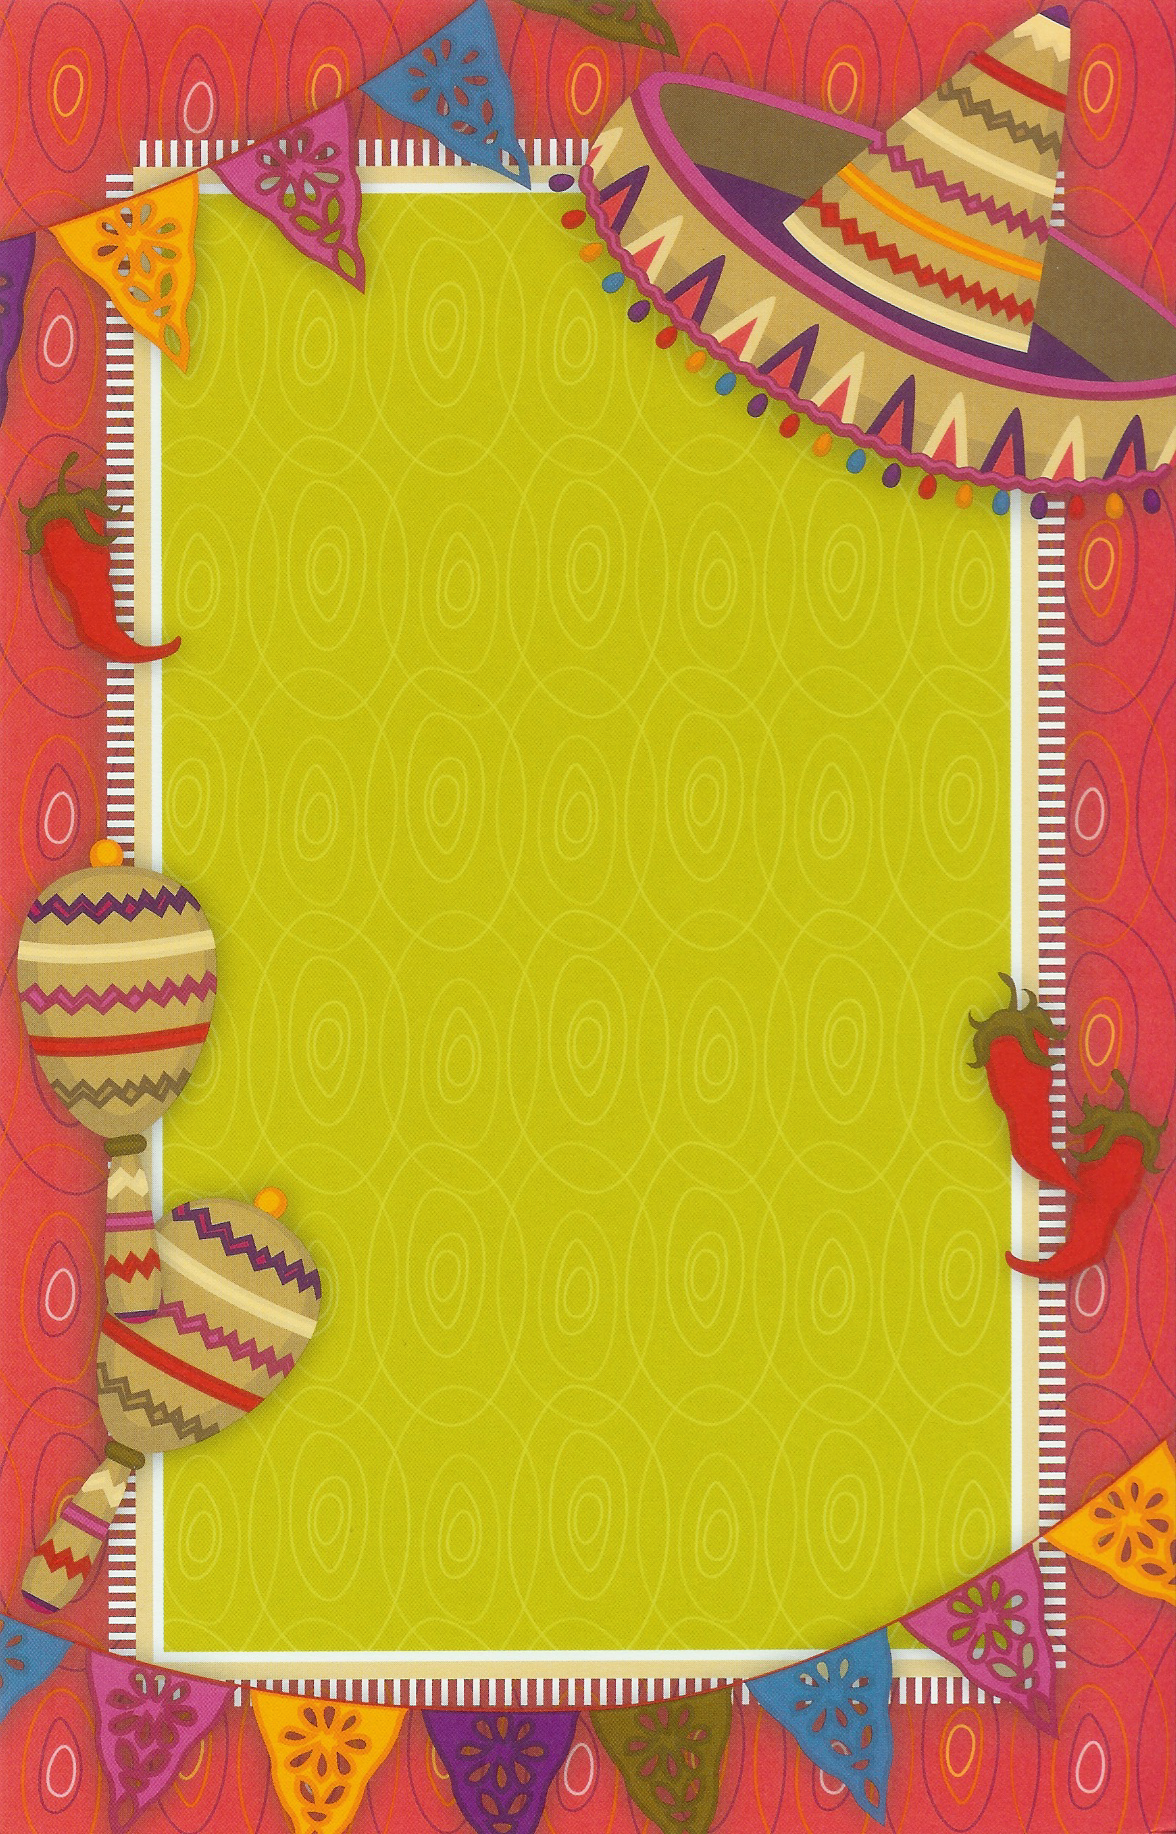 Hot Fiesta Invitation Cards and free printable fiesta party